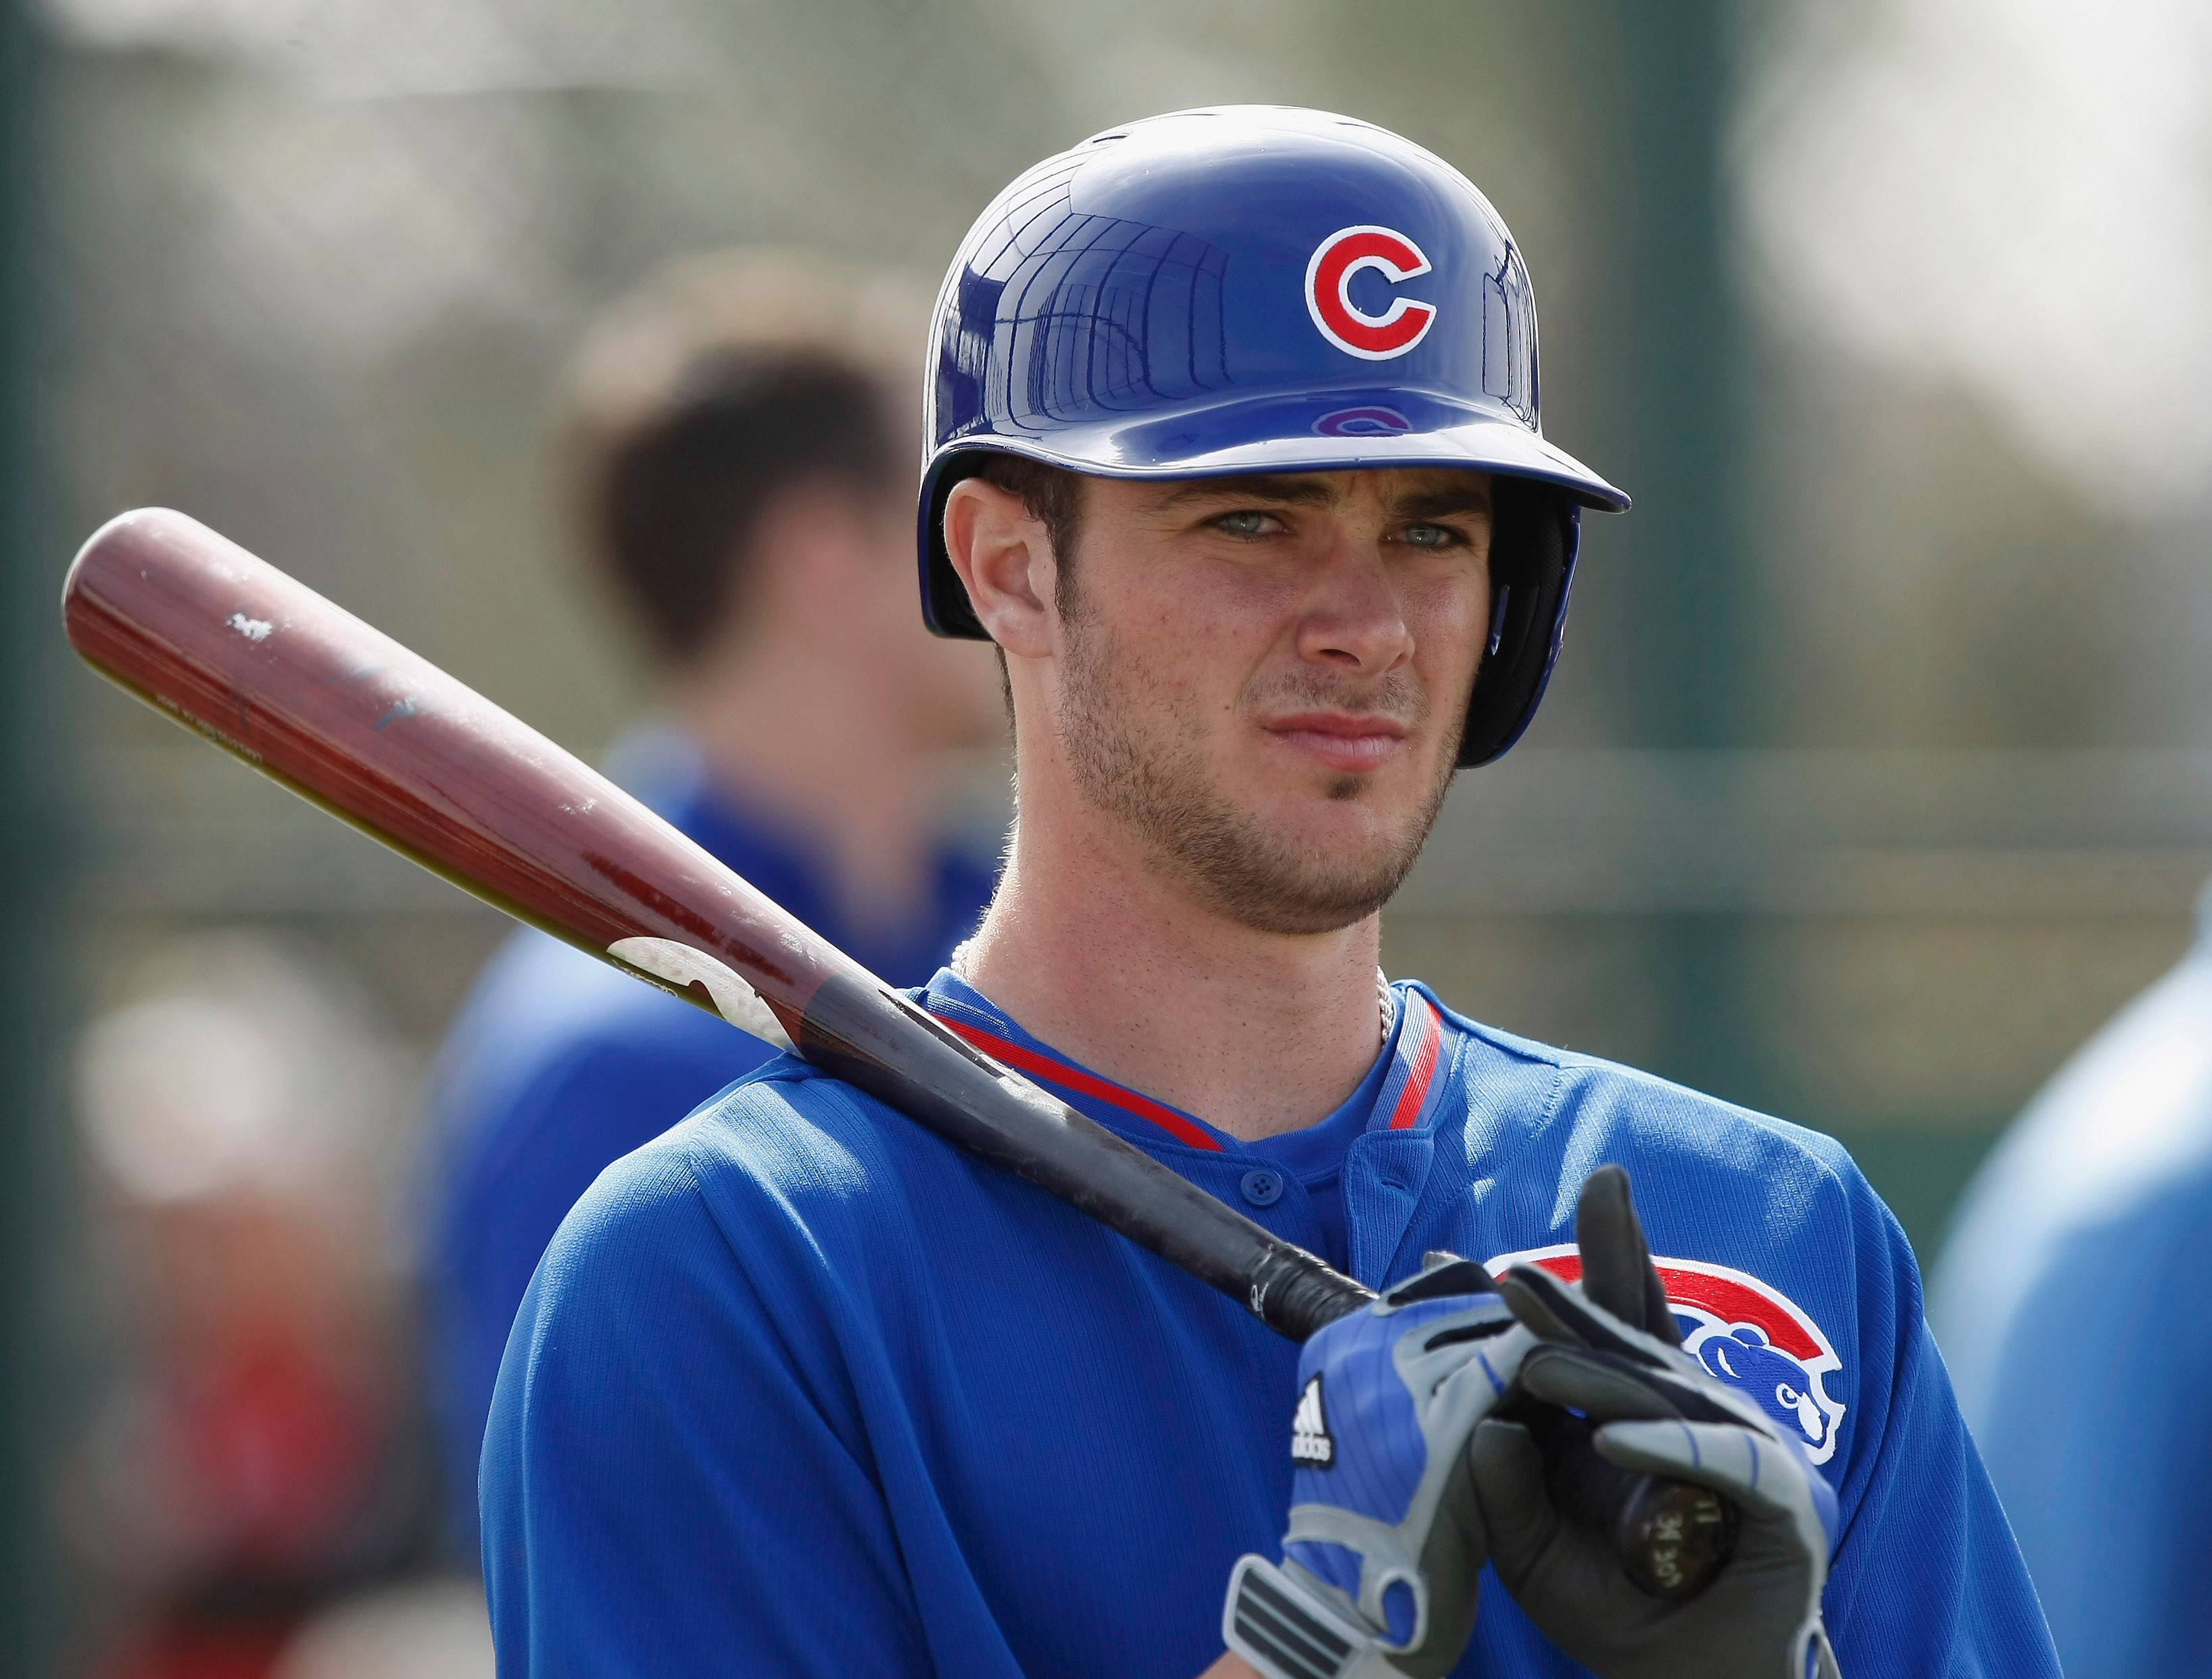 Third baseman Kris Bryant, who was promoted to Triple A with the Iowa Cubs, says he's focused on the present and not worried about whether he'll be called up to play at Wrigley in September.